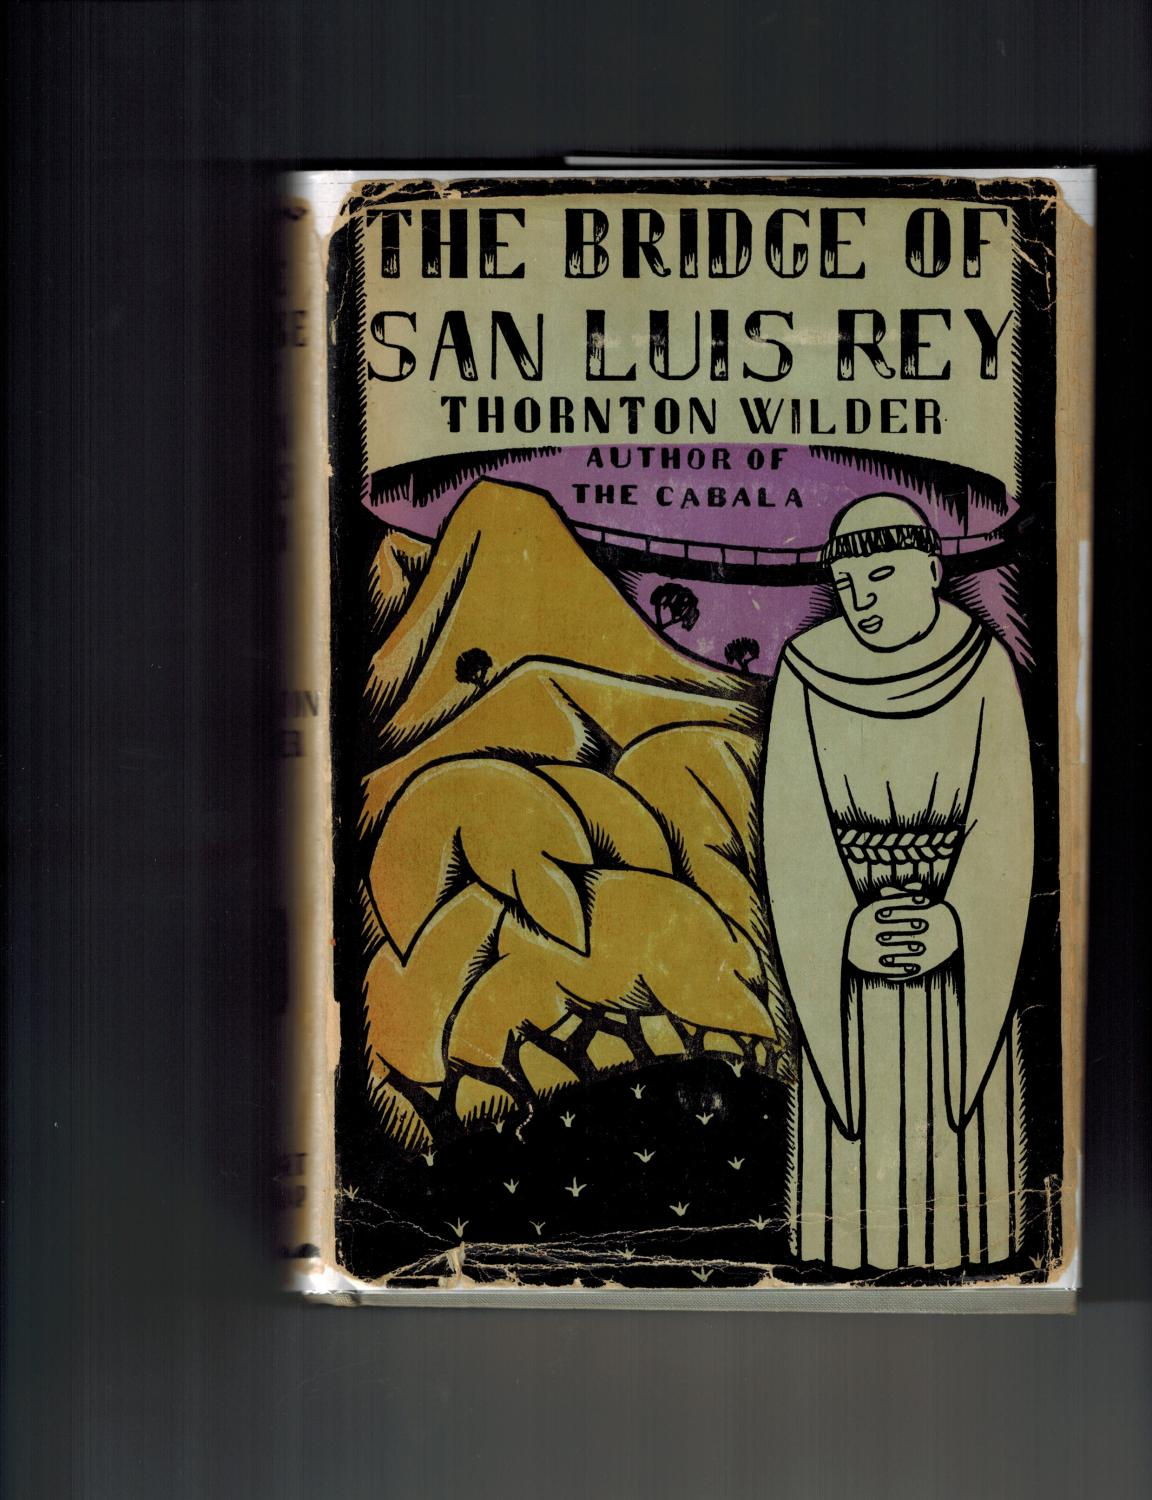 the bridge to san luis rey Definition of the bridge of san luis rey – our online dictionary has the bridge of san luis rey information from novels for students dictionary encyclopediacom: english, psychology and medical dictionaries.